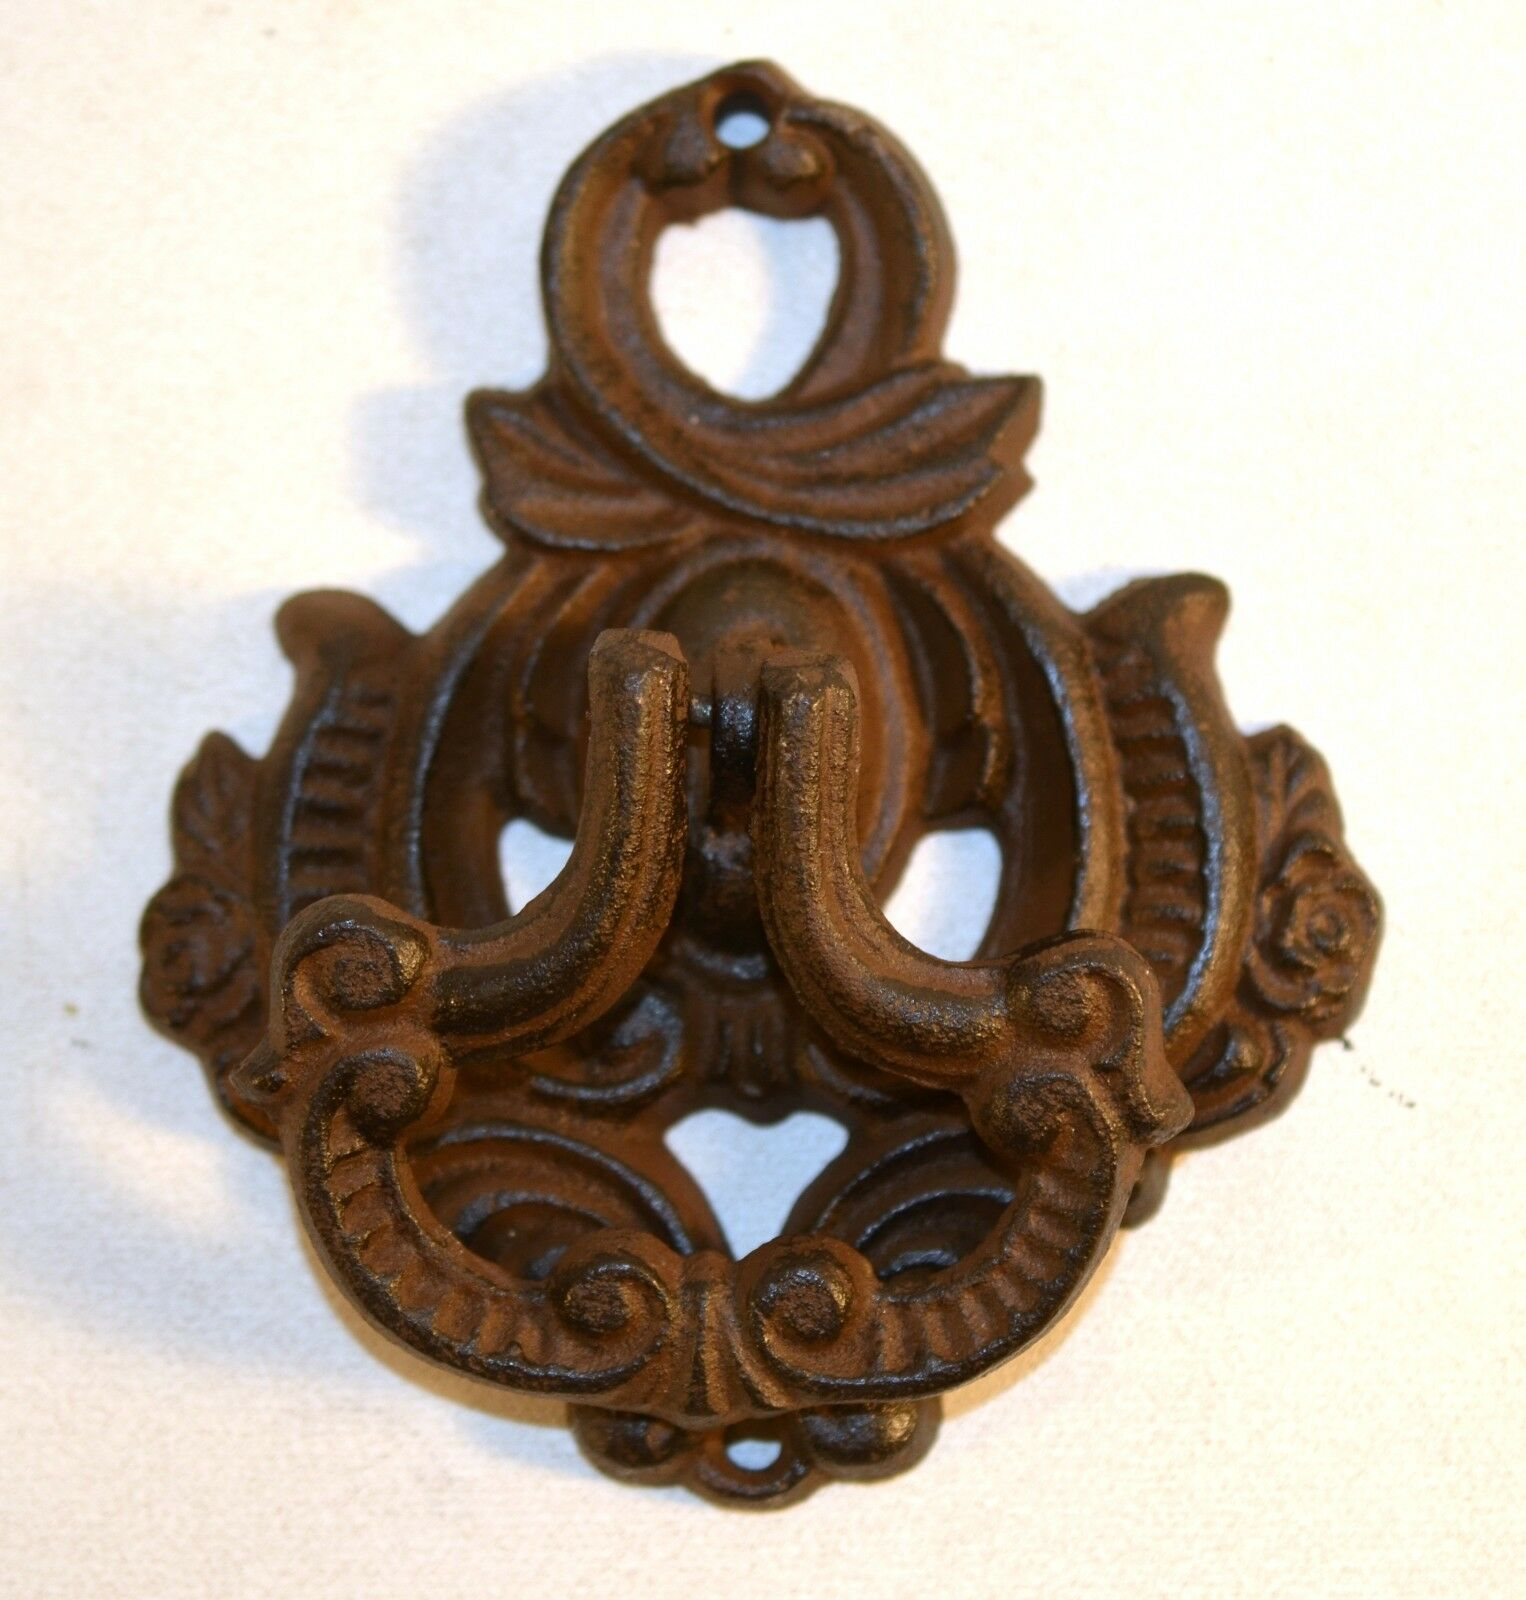 Vintage Large Heavy Ornate Cast Iron Door Knocker Rustic Rare Dark Brown